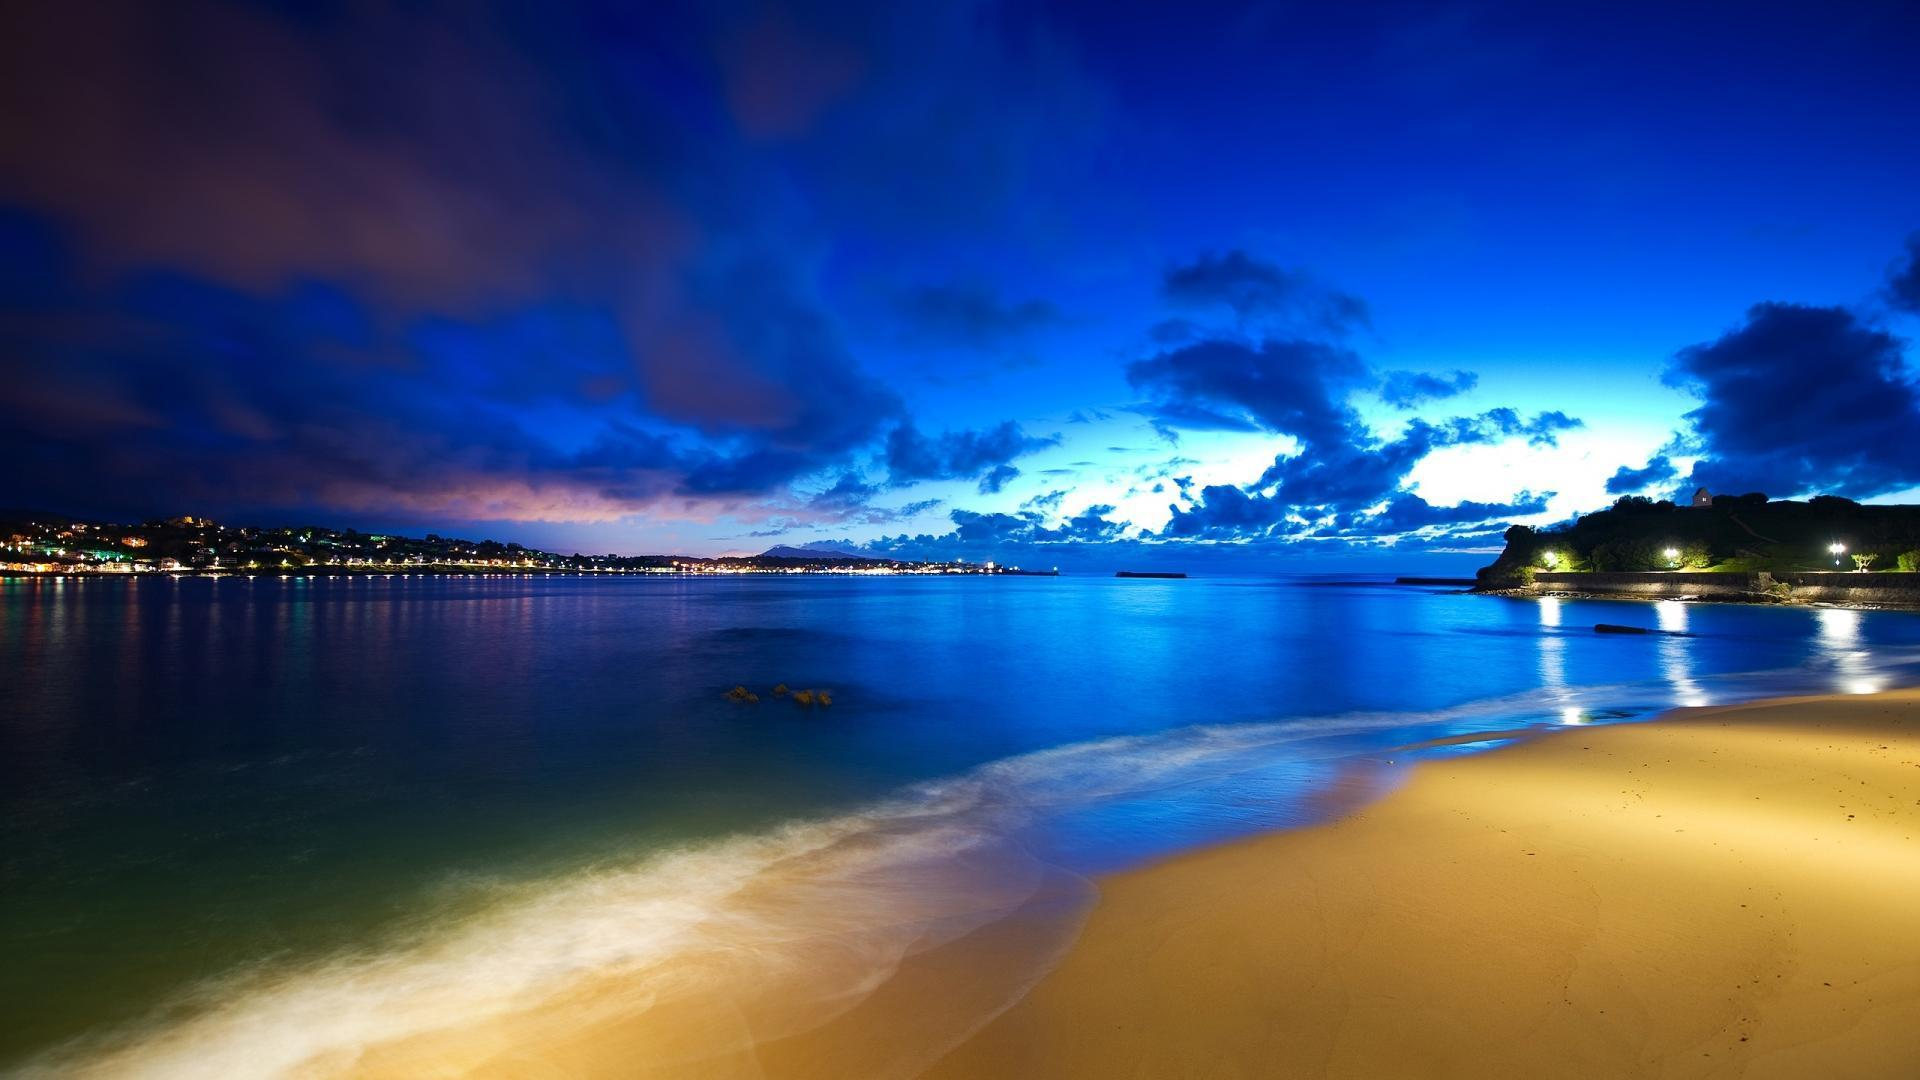 Night Beach Hd Wallpapers On Wallpaperdog Also explore thousands of beautiful hd wallpapers and background images. night beach hd wallpapers on wallpaperdog